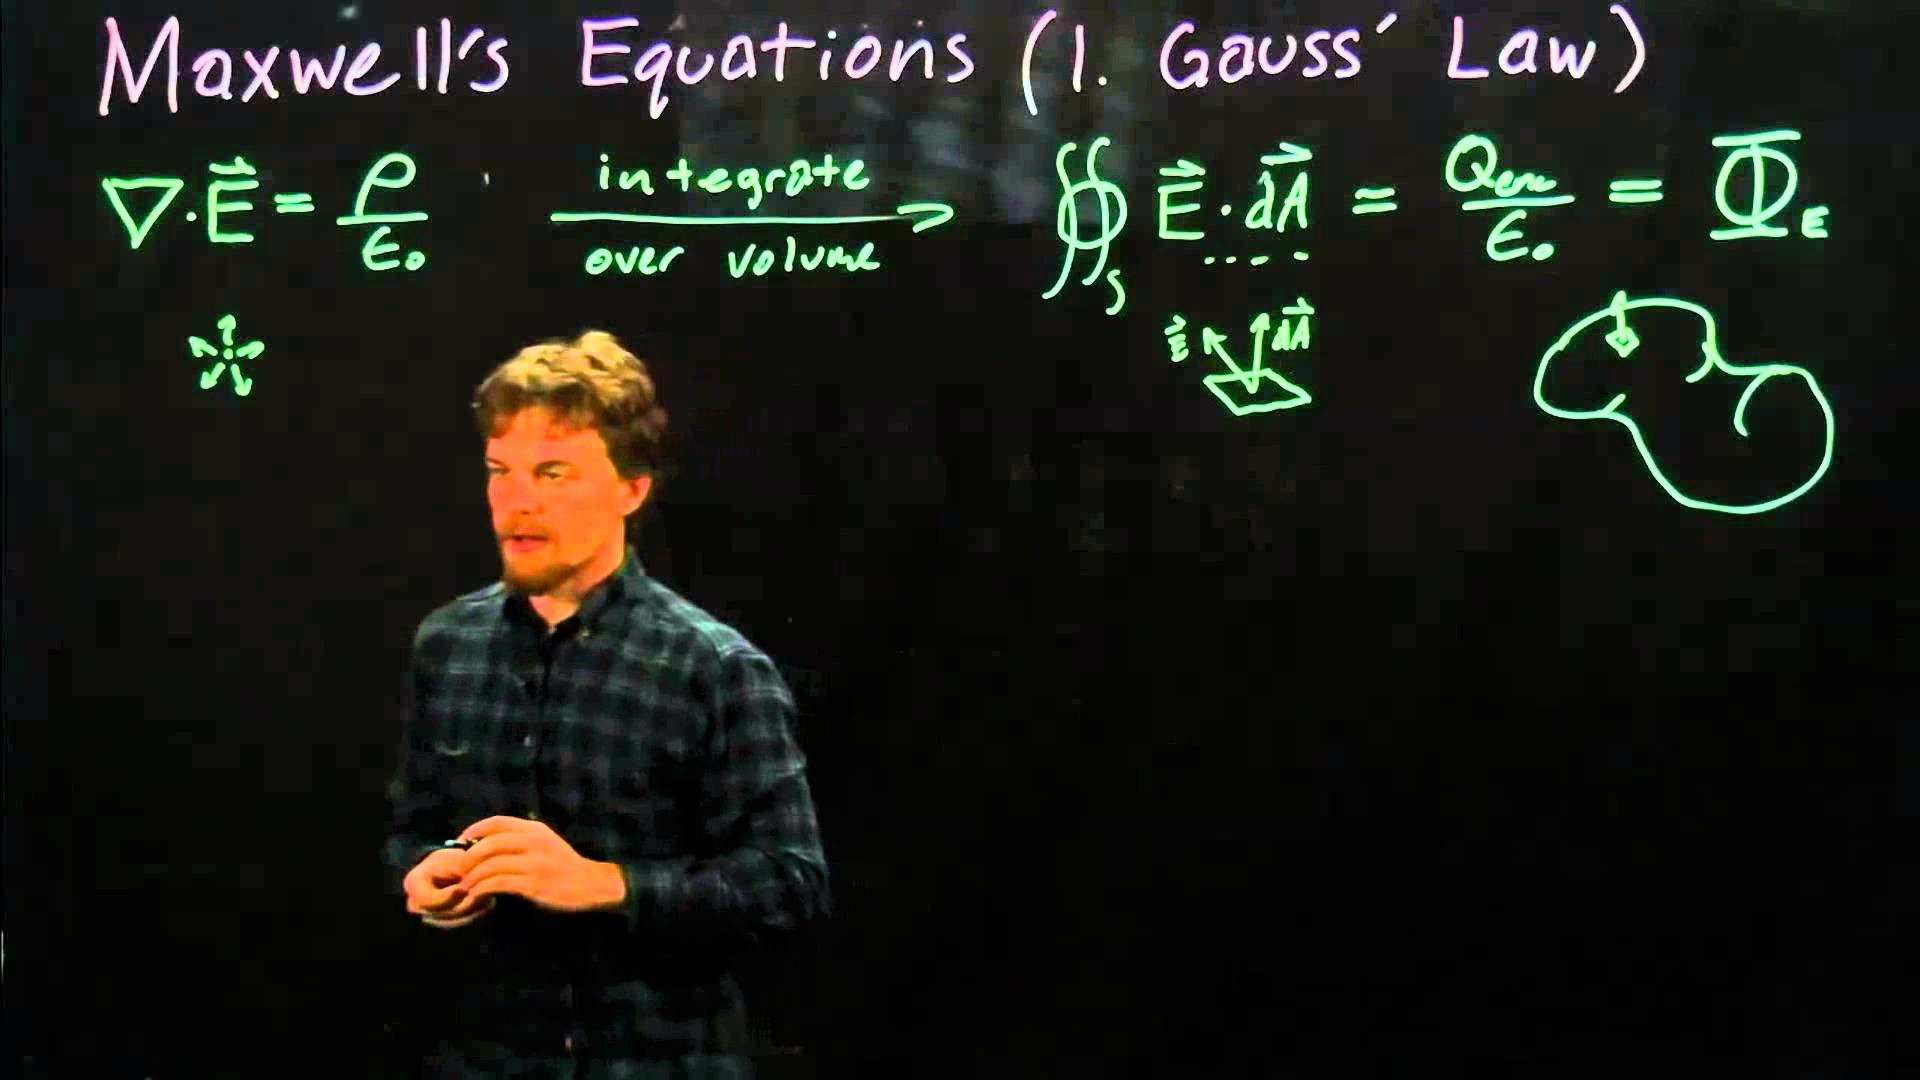 1920x1080 Maxwell's Equations - Gauss's Law